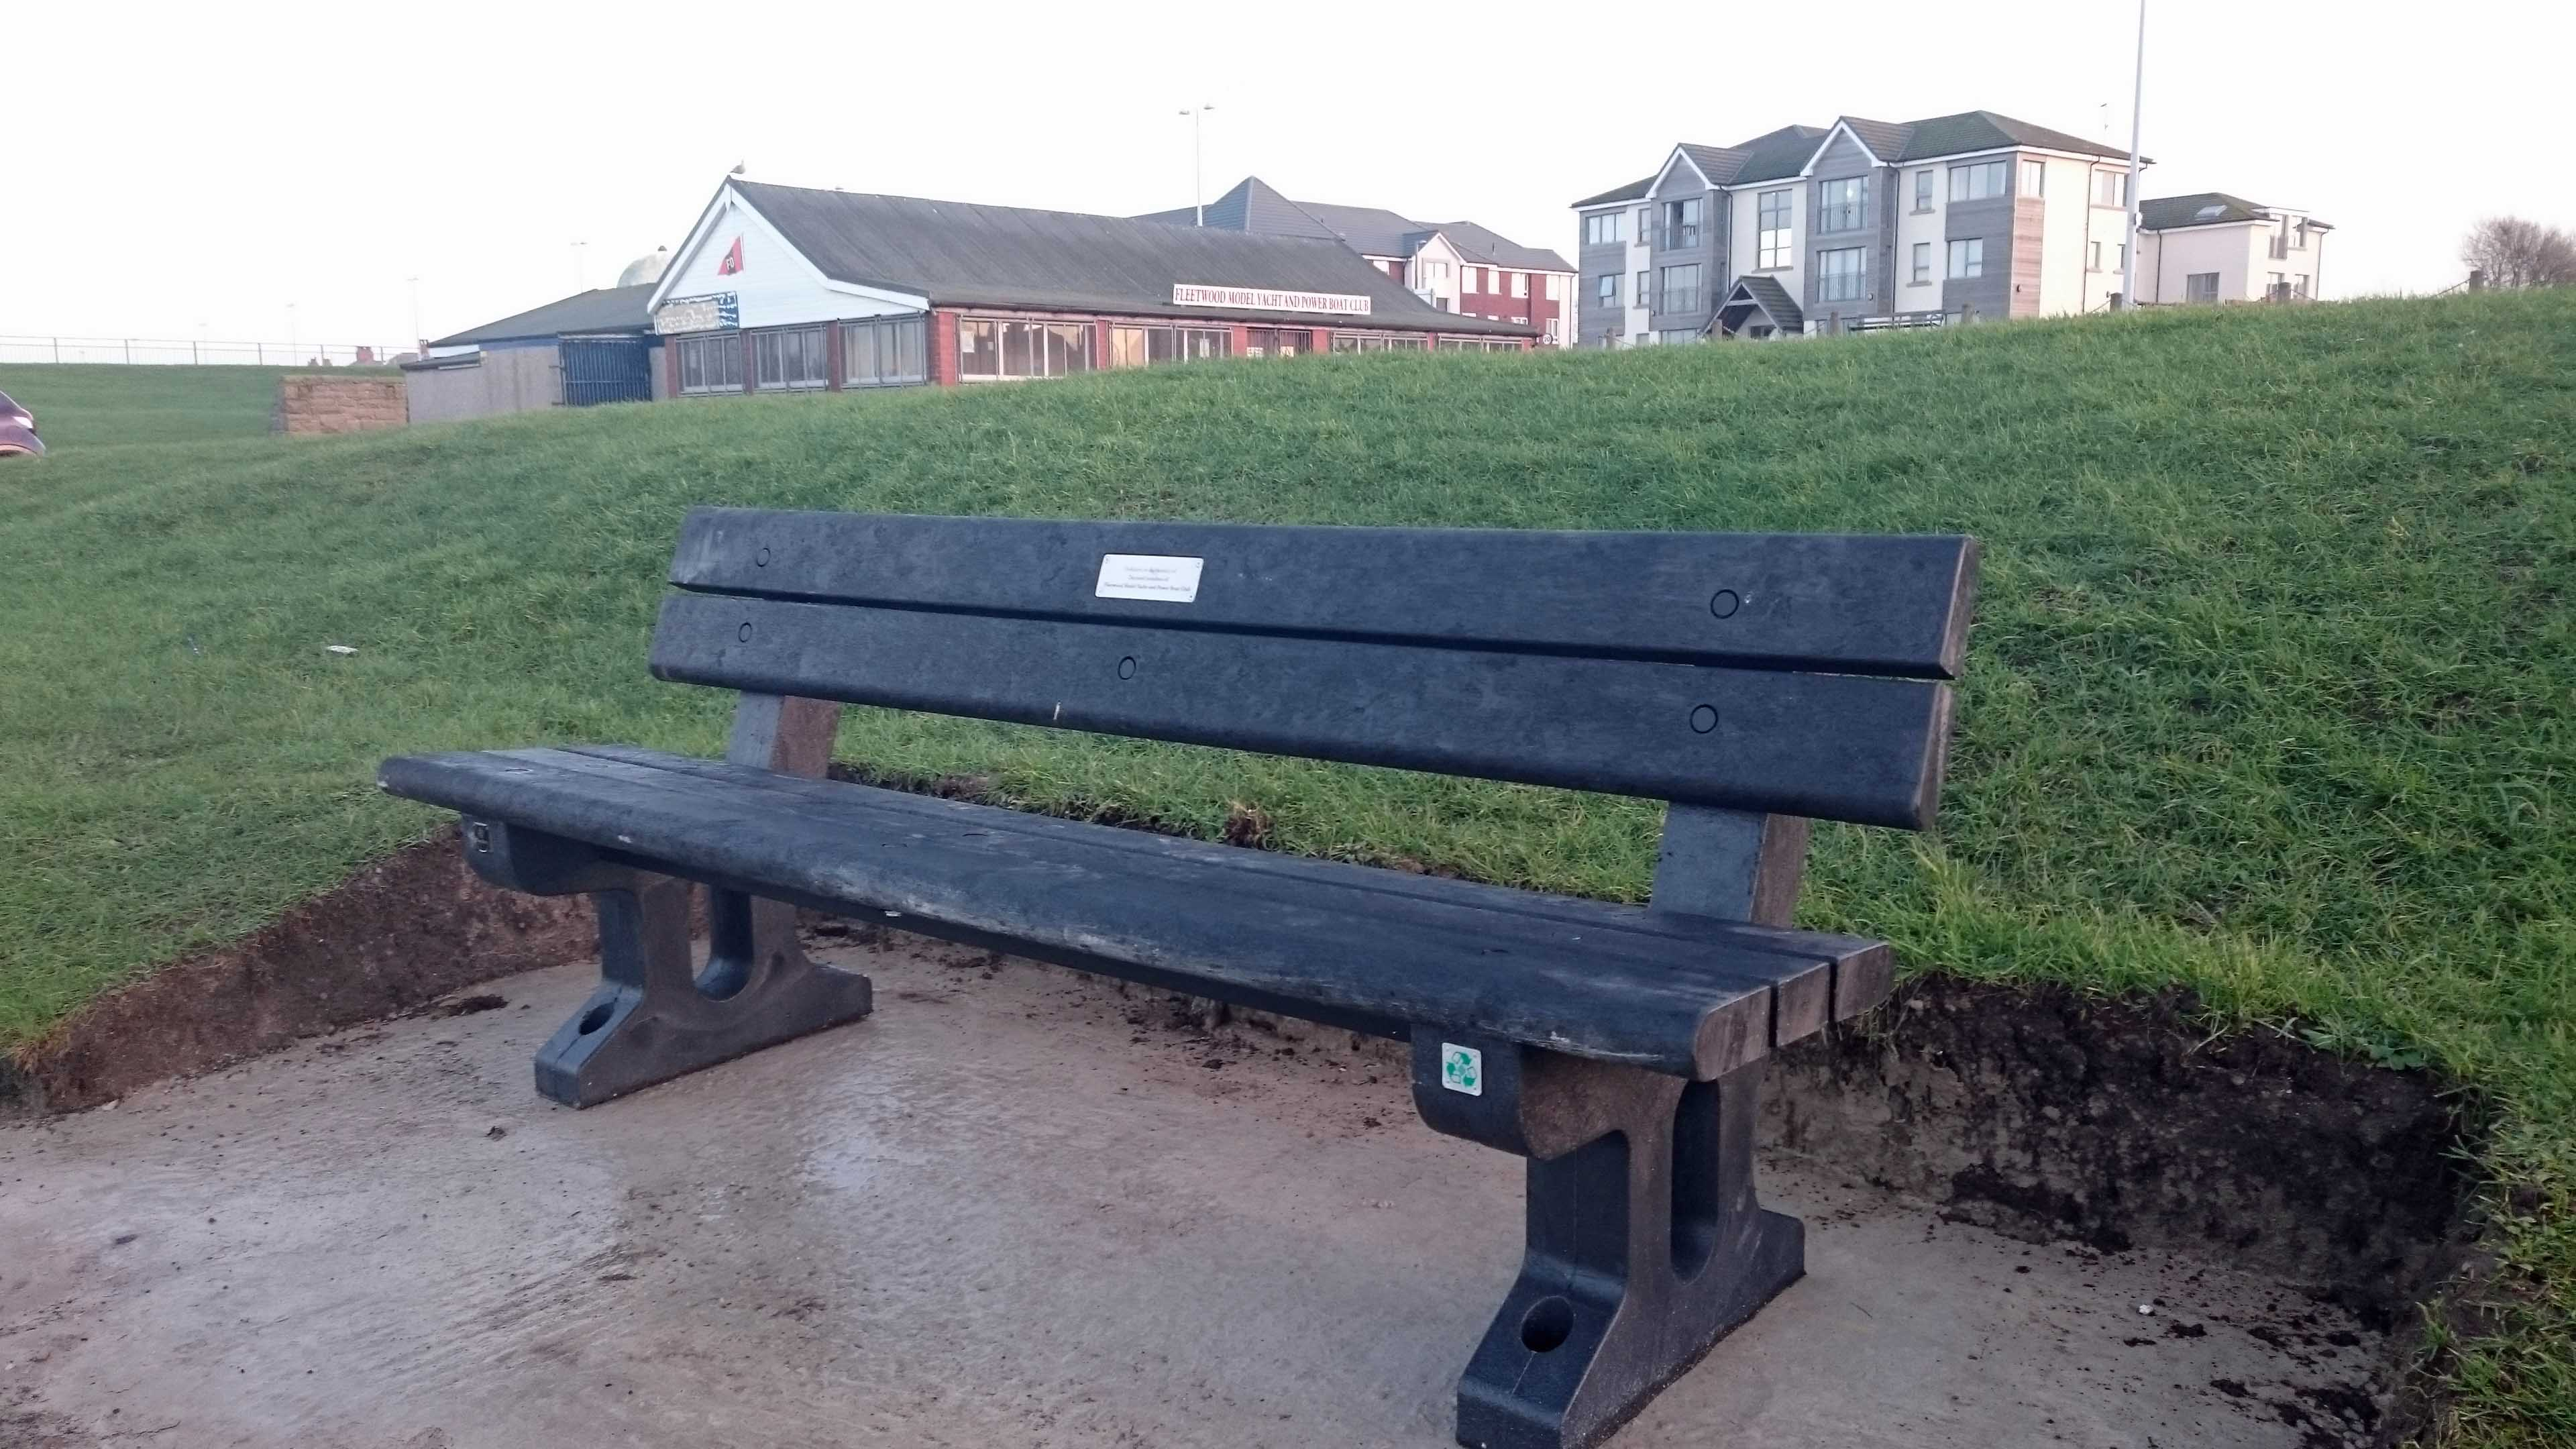 New memorial bench fleetwood mypbc Cemetery benches